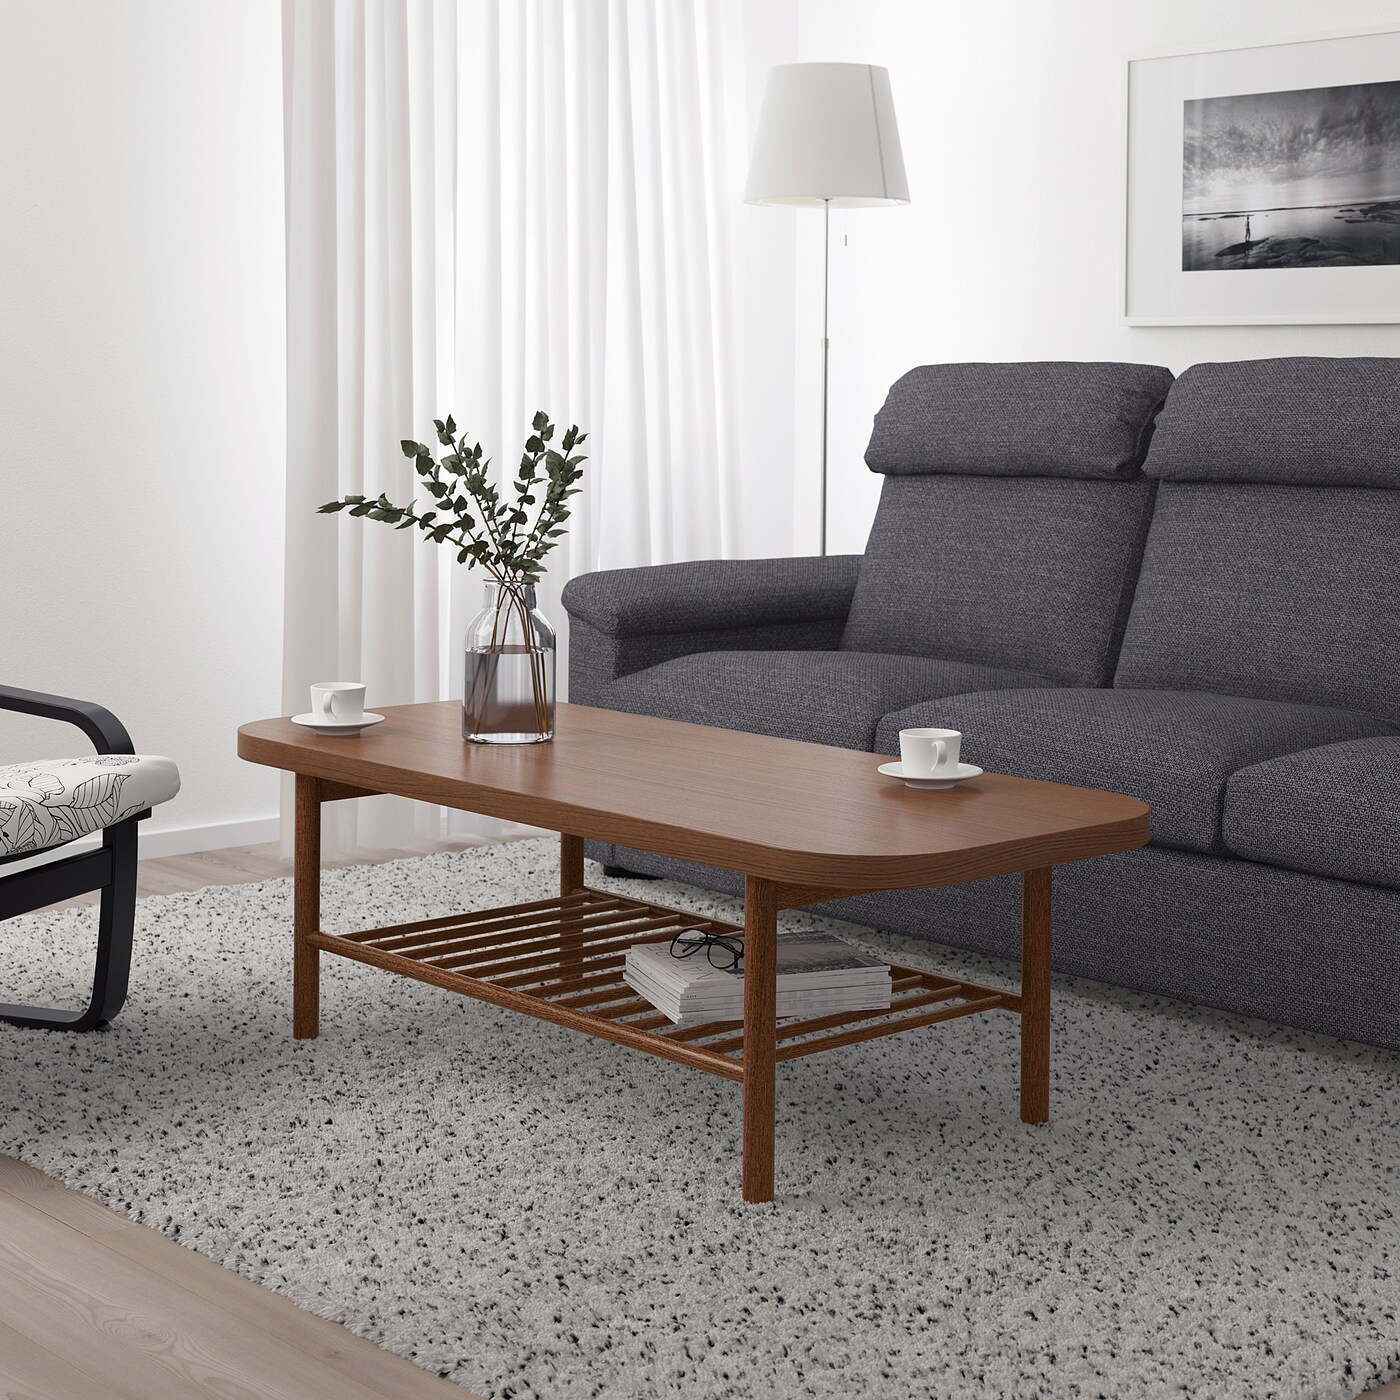 Listerby Coffee Table Brown 140x60 Cm Ikea